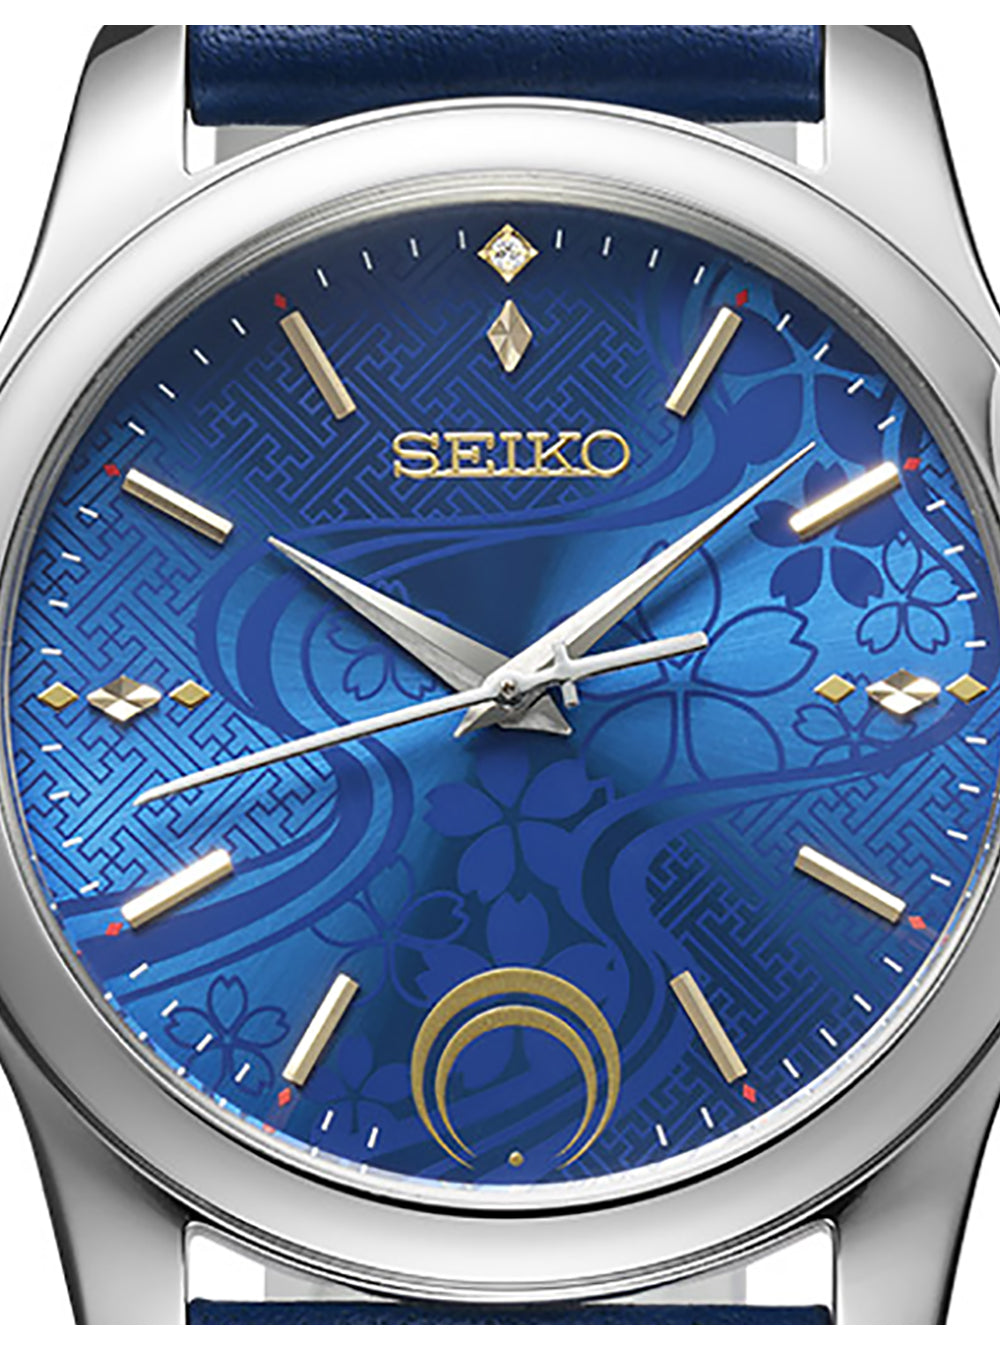 SEIKO×TOUKEN RANBU LIMITED EDITION MADE IN JAPAN